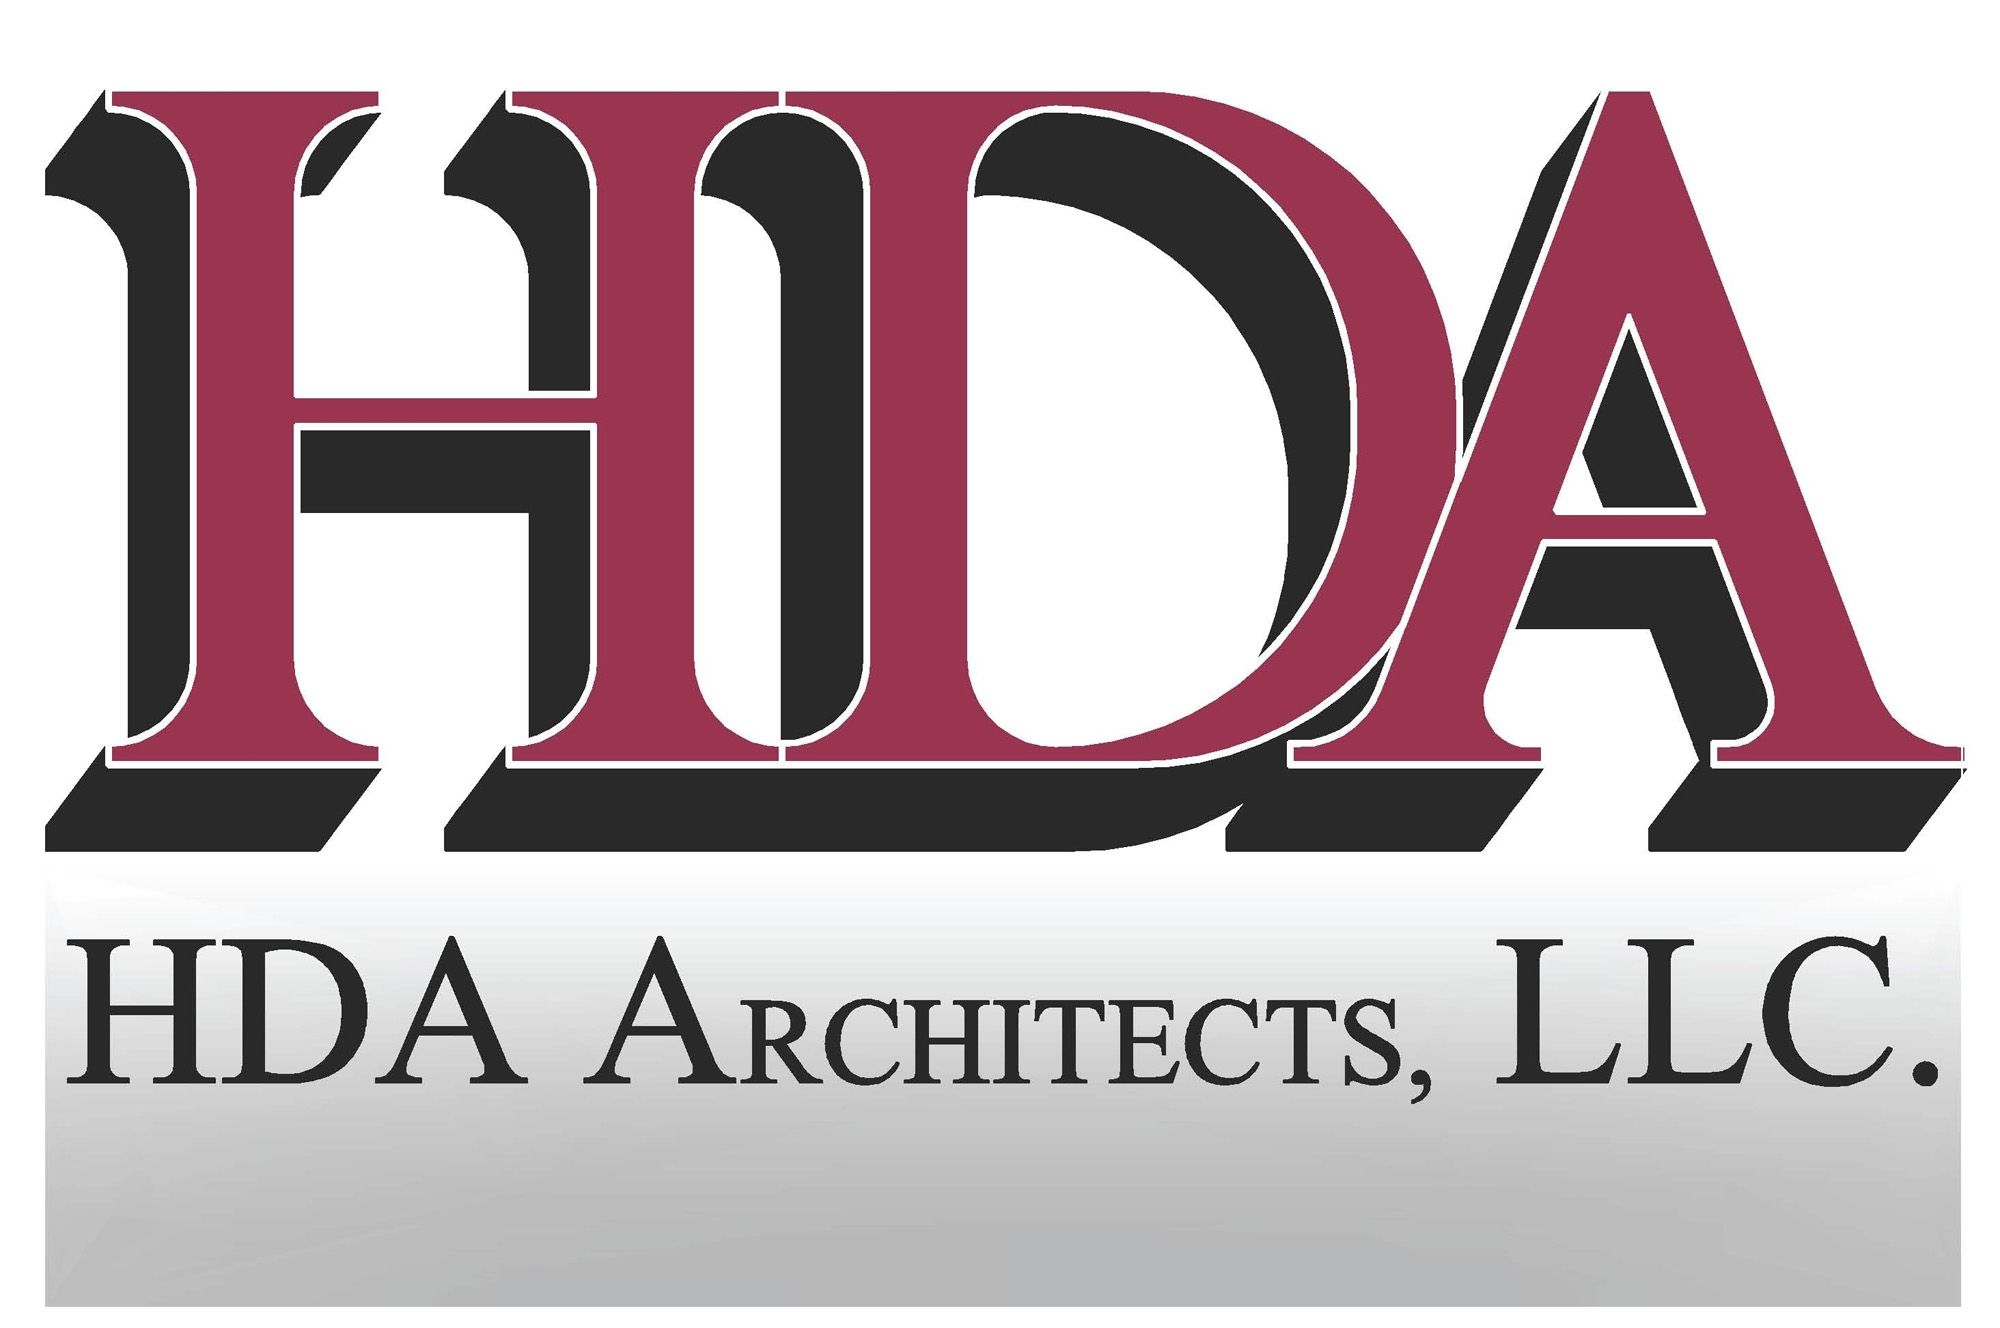 HDA Architects, LLC.